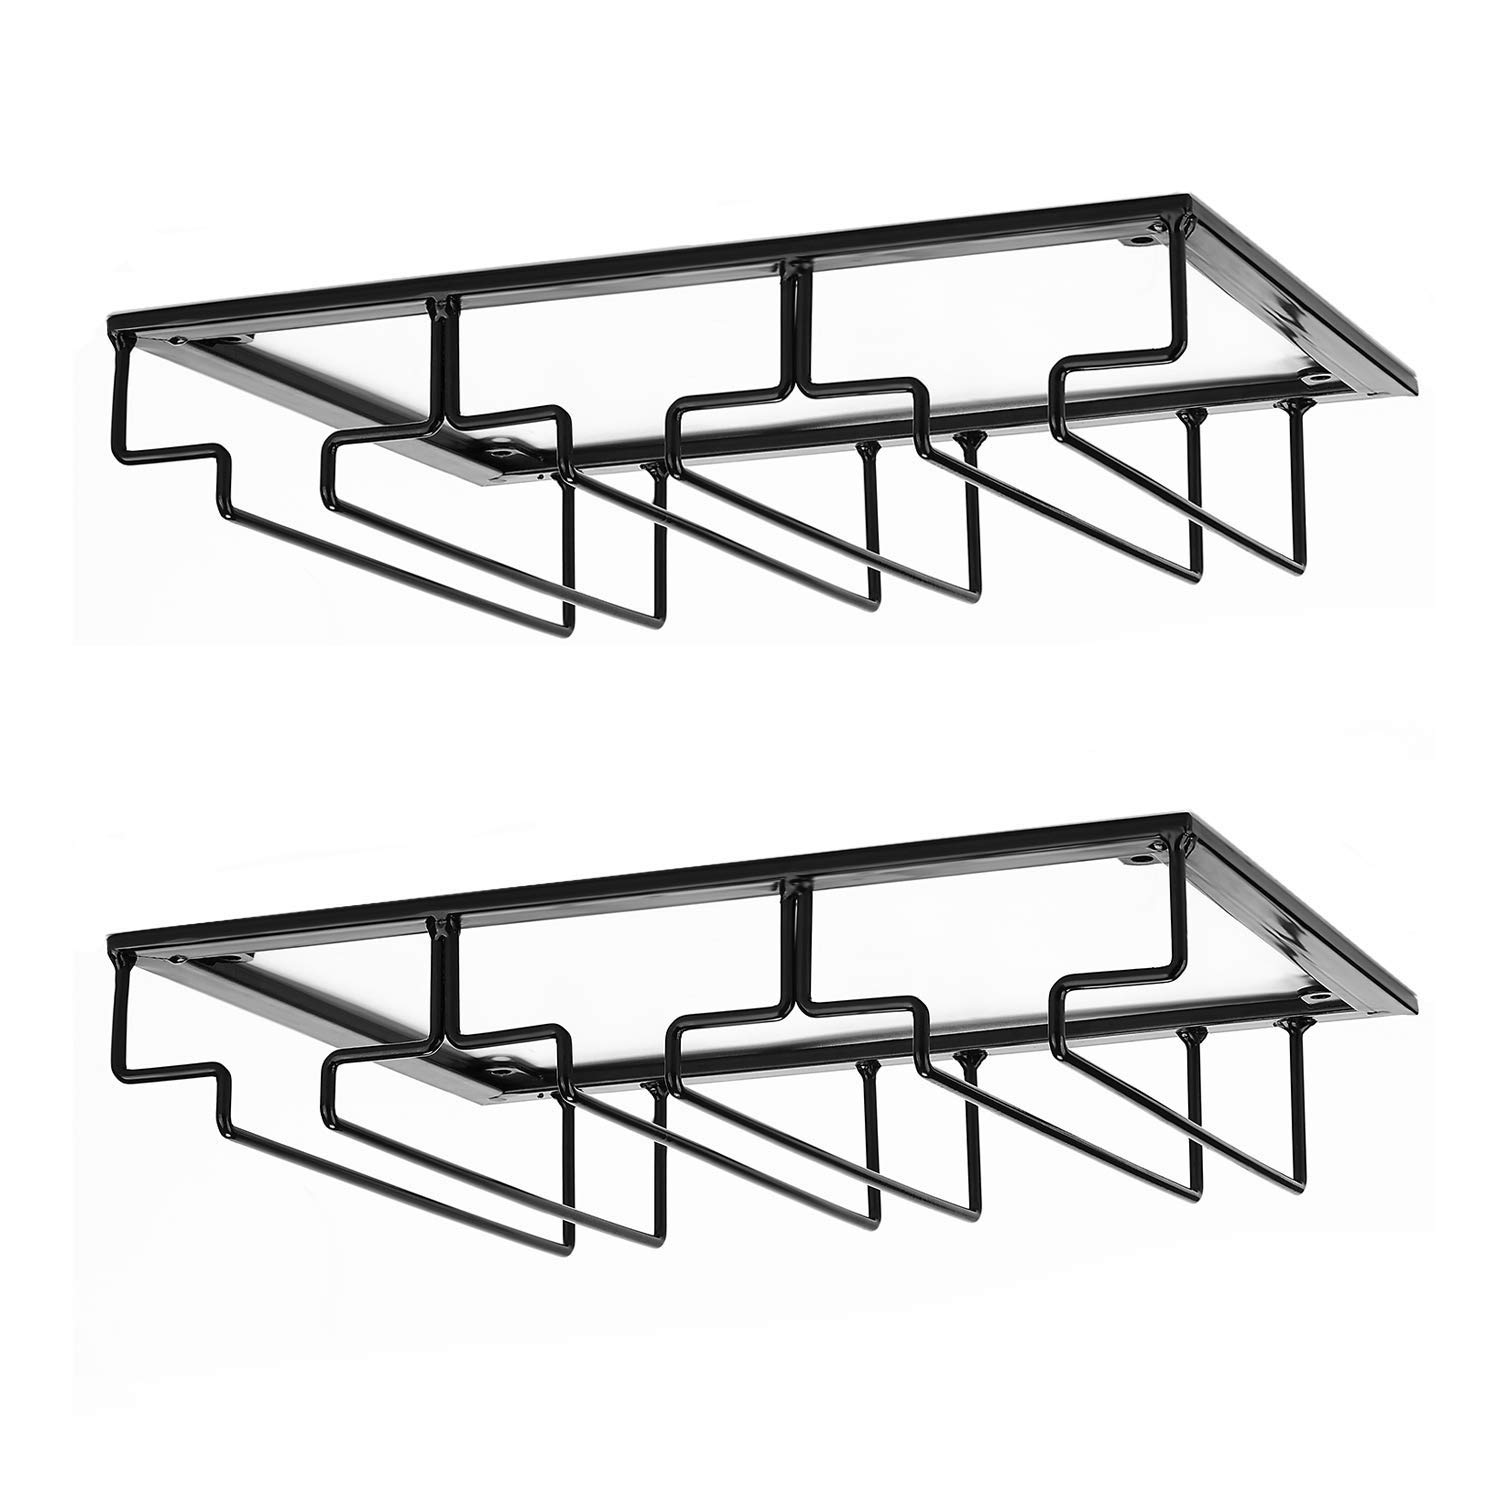 DEFWAY Wine Glass Rack - Under Cabinet Stemware Wine Glass Holder Glasses Storage Hanger 2 Pack Metal Organizer for Bar Kitchen Black by defway